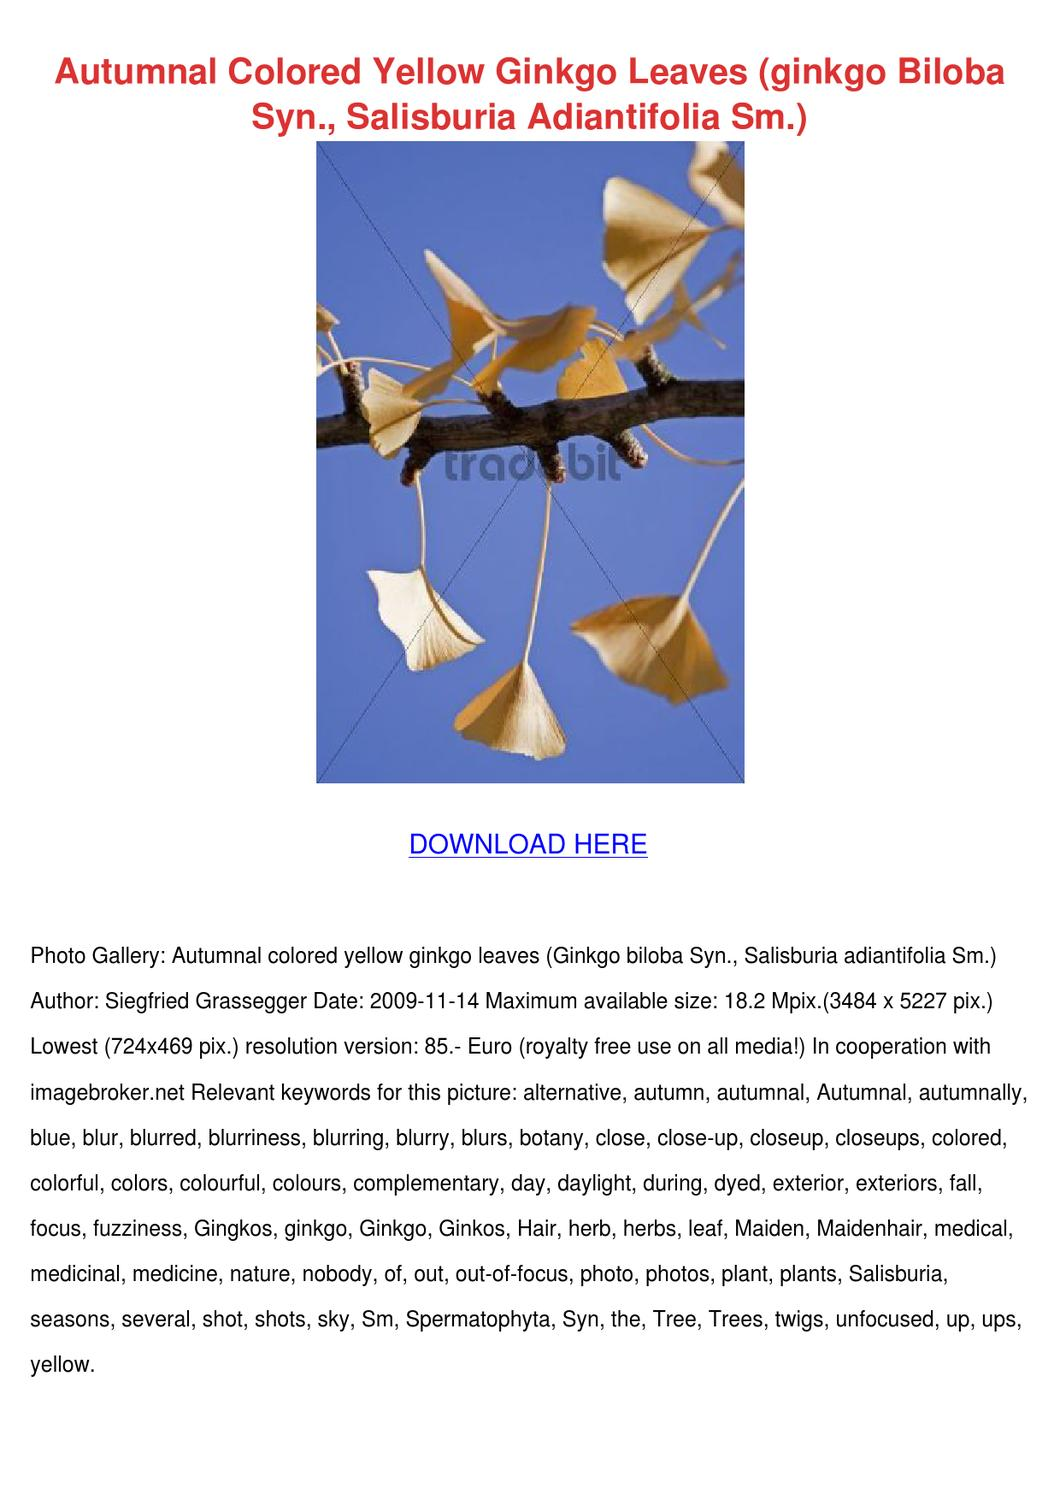 Autumnal Colored Yellow Ginkgo Leaves By Lula Hattaway Issuu Lg Lcd Monitor Flatron L1718s Service Manual